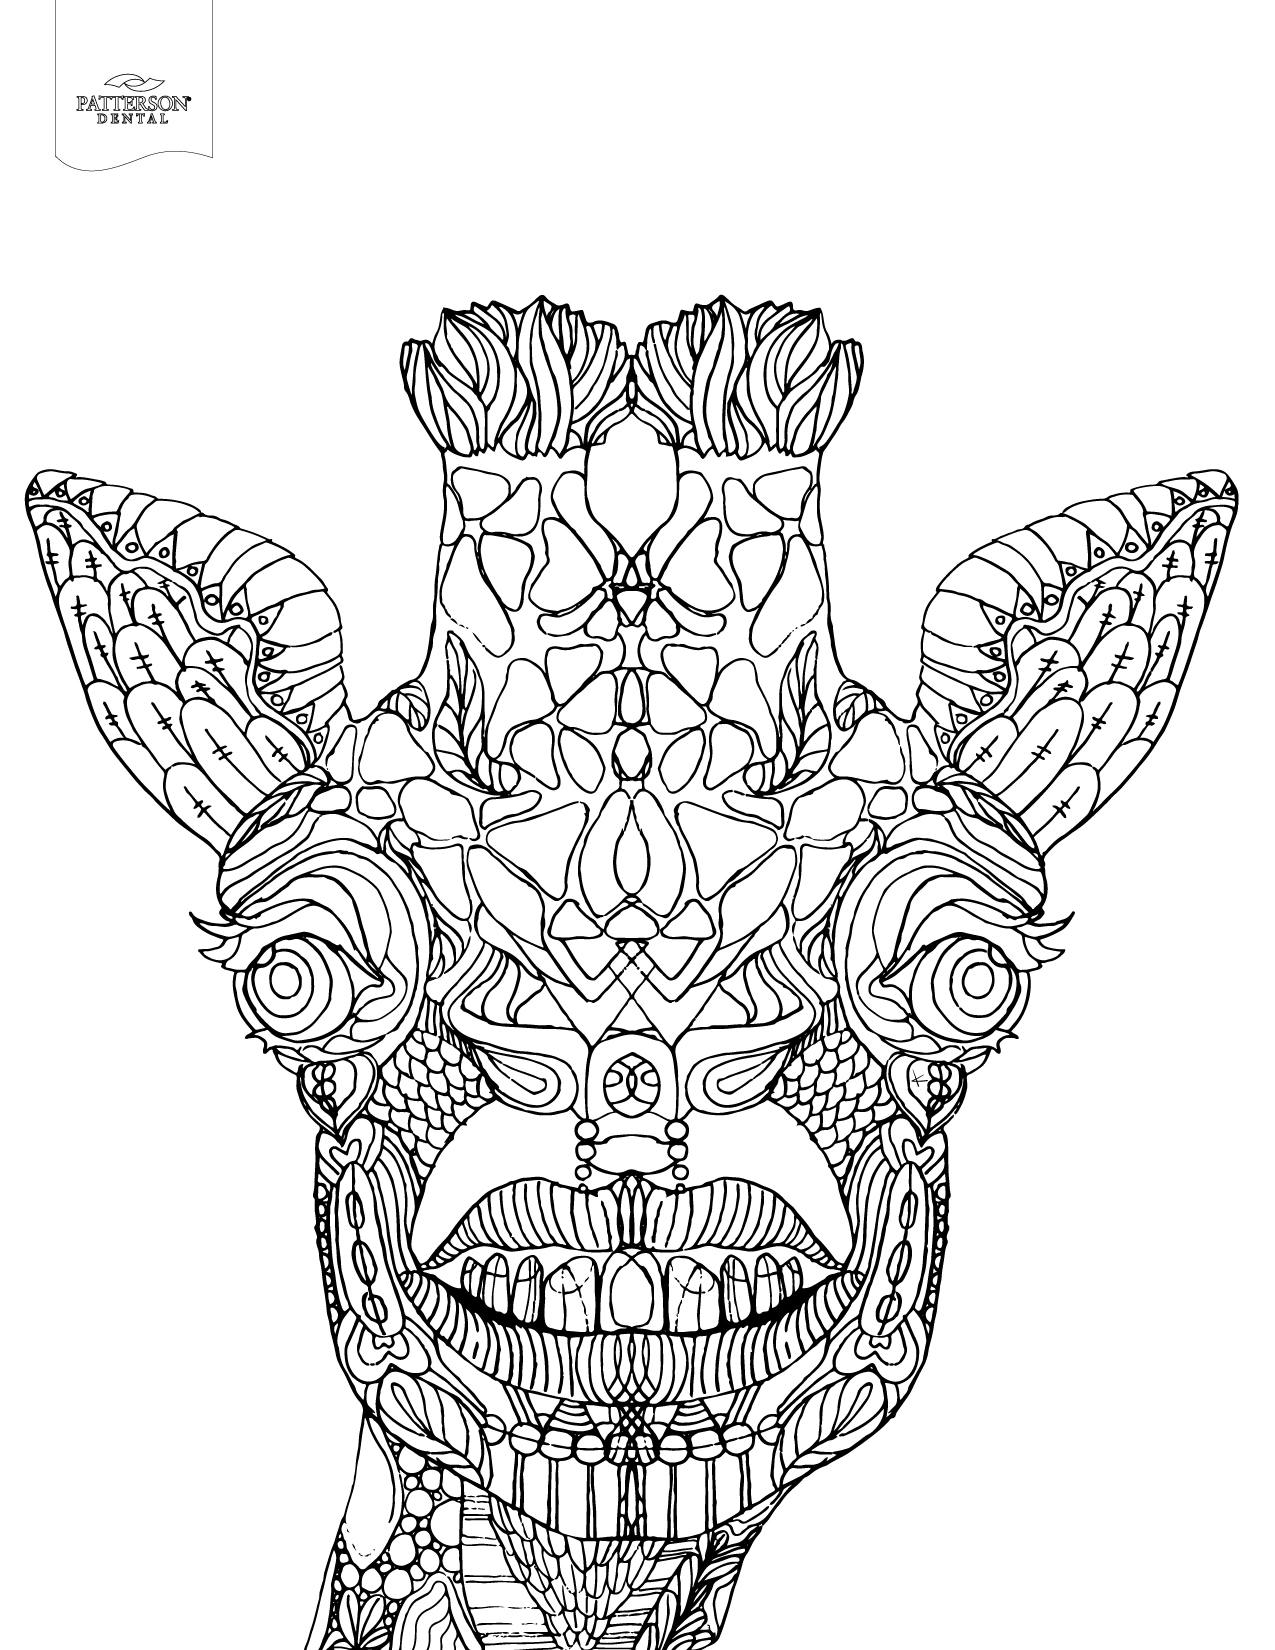 coloring templates for adults printable coloring pages healthcurrents templates adults coloring for